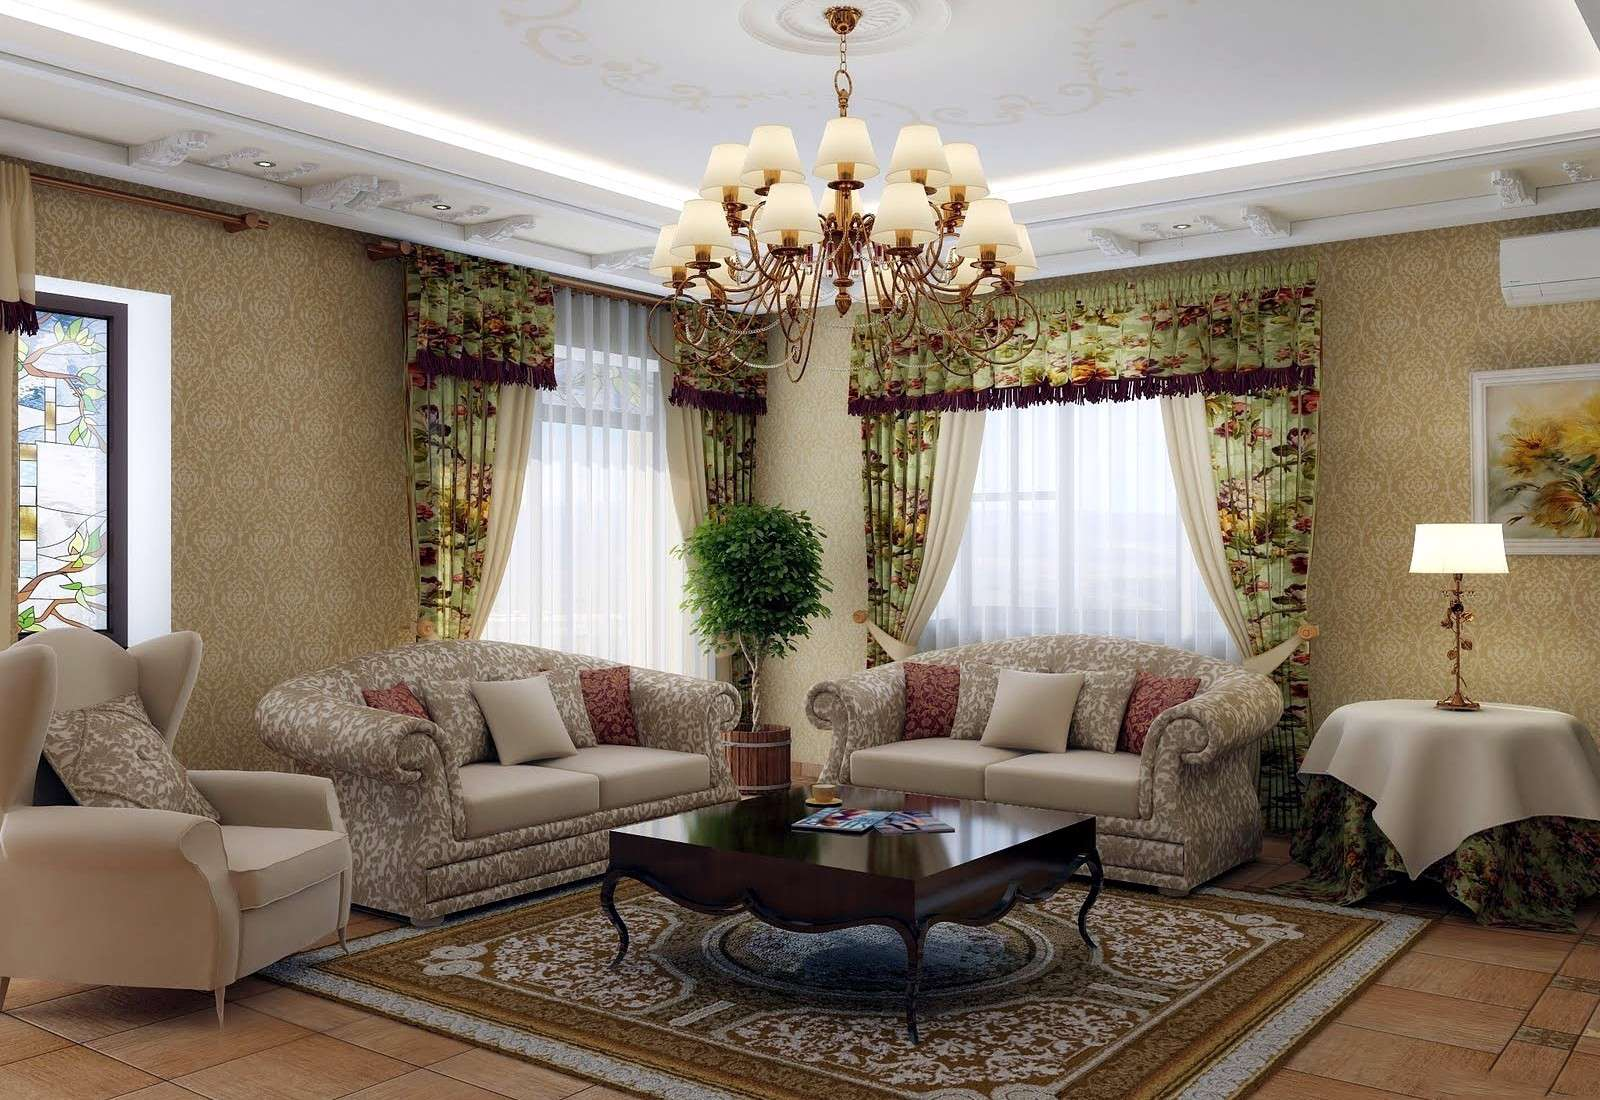 15 tips to design your living room that will change your